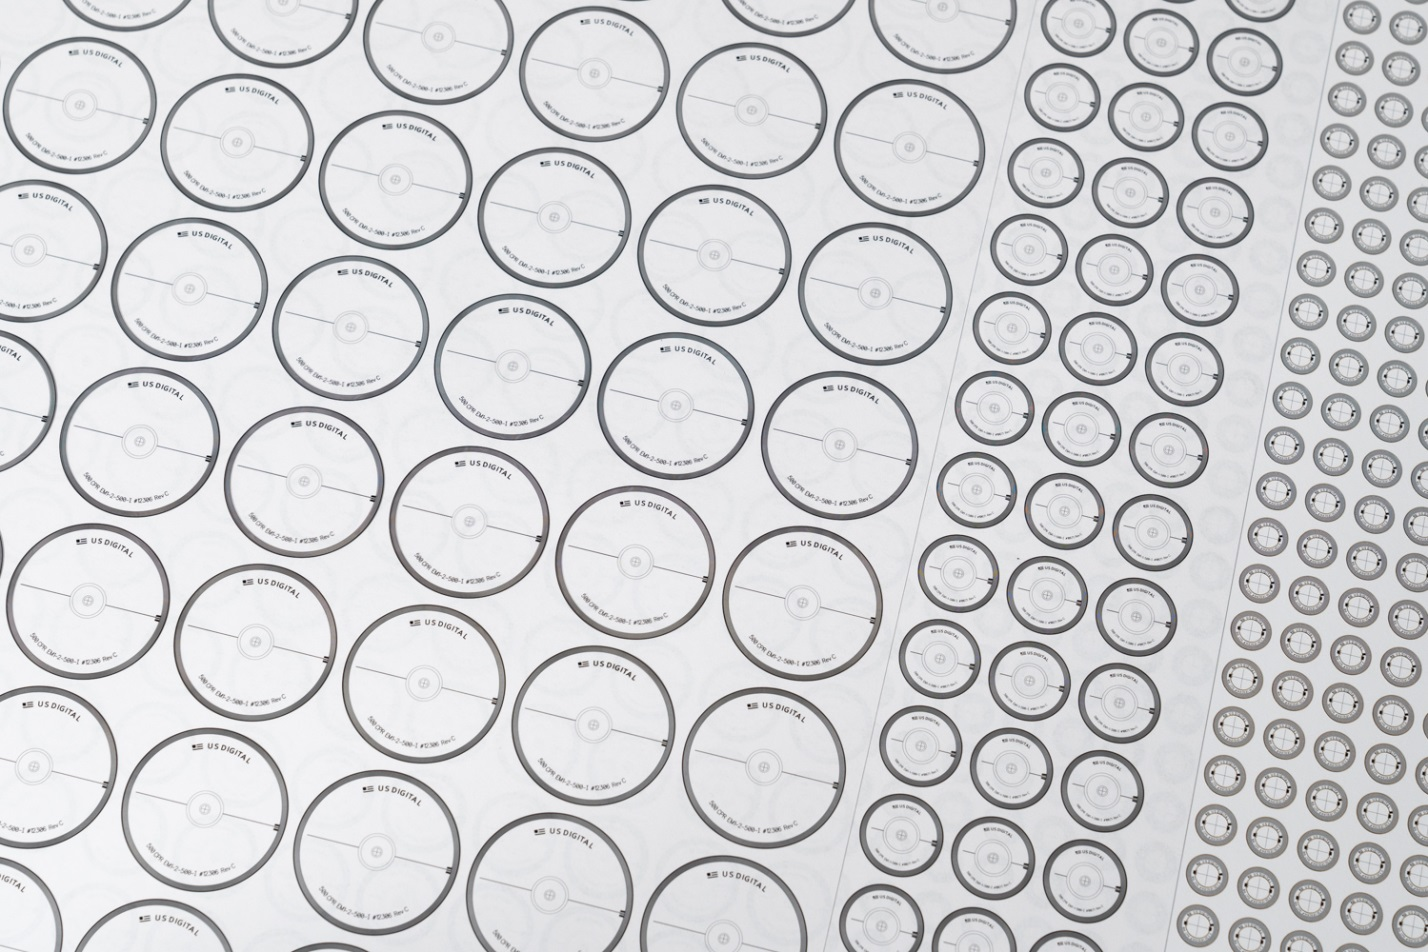 Disks are imaged on sheets of Mylar film, then separated from each other by a laser cutter. Shown above are 2-inch, 1 inch, and 1/2-inch encoder disks (50.8 mm, 25.4 mm, 12.7 mm).